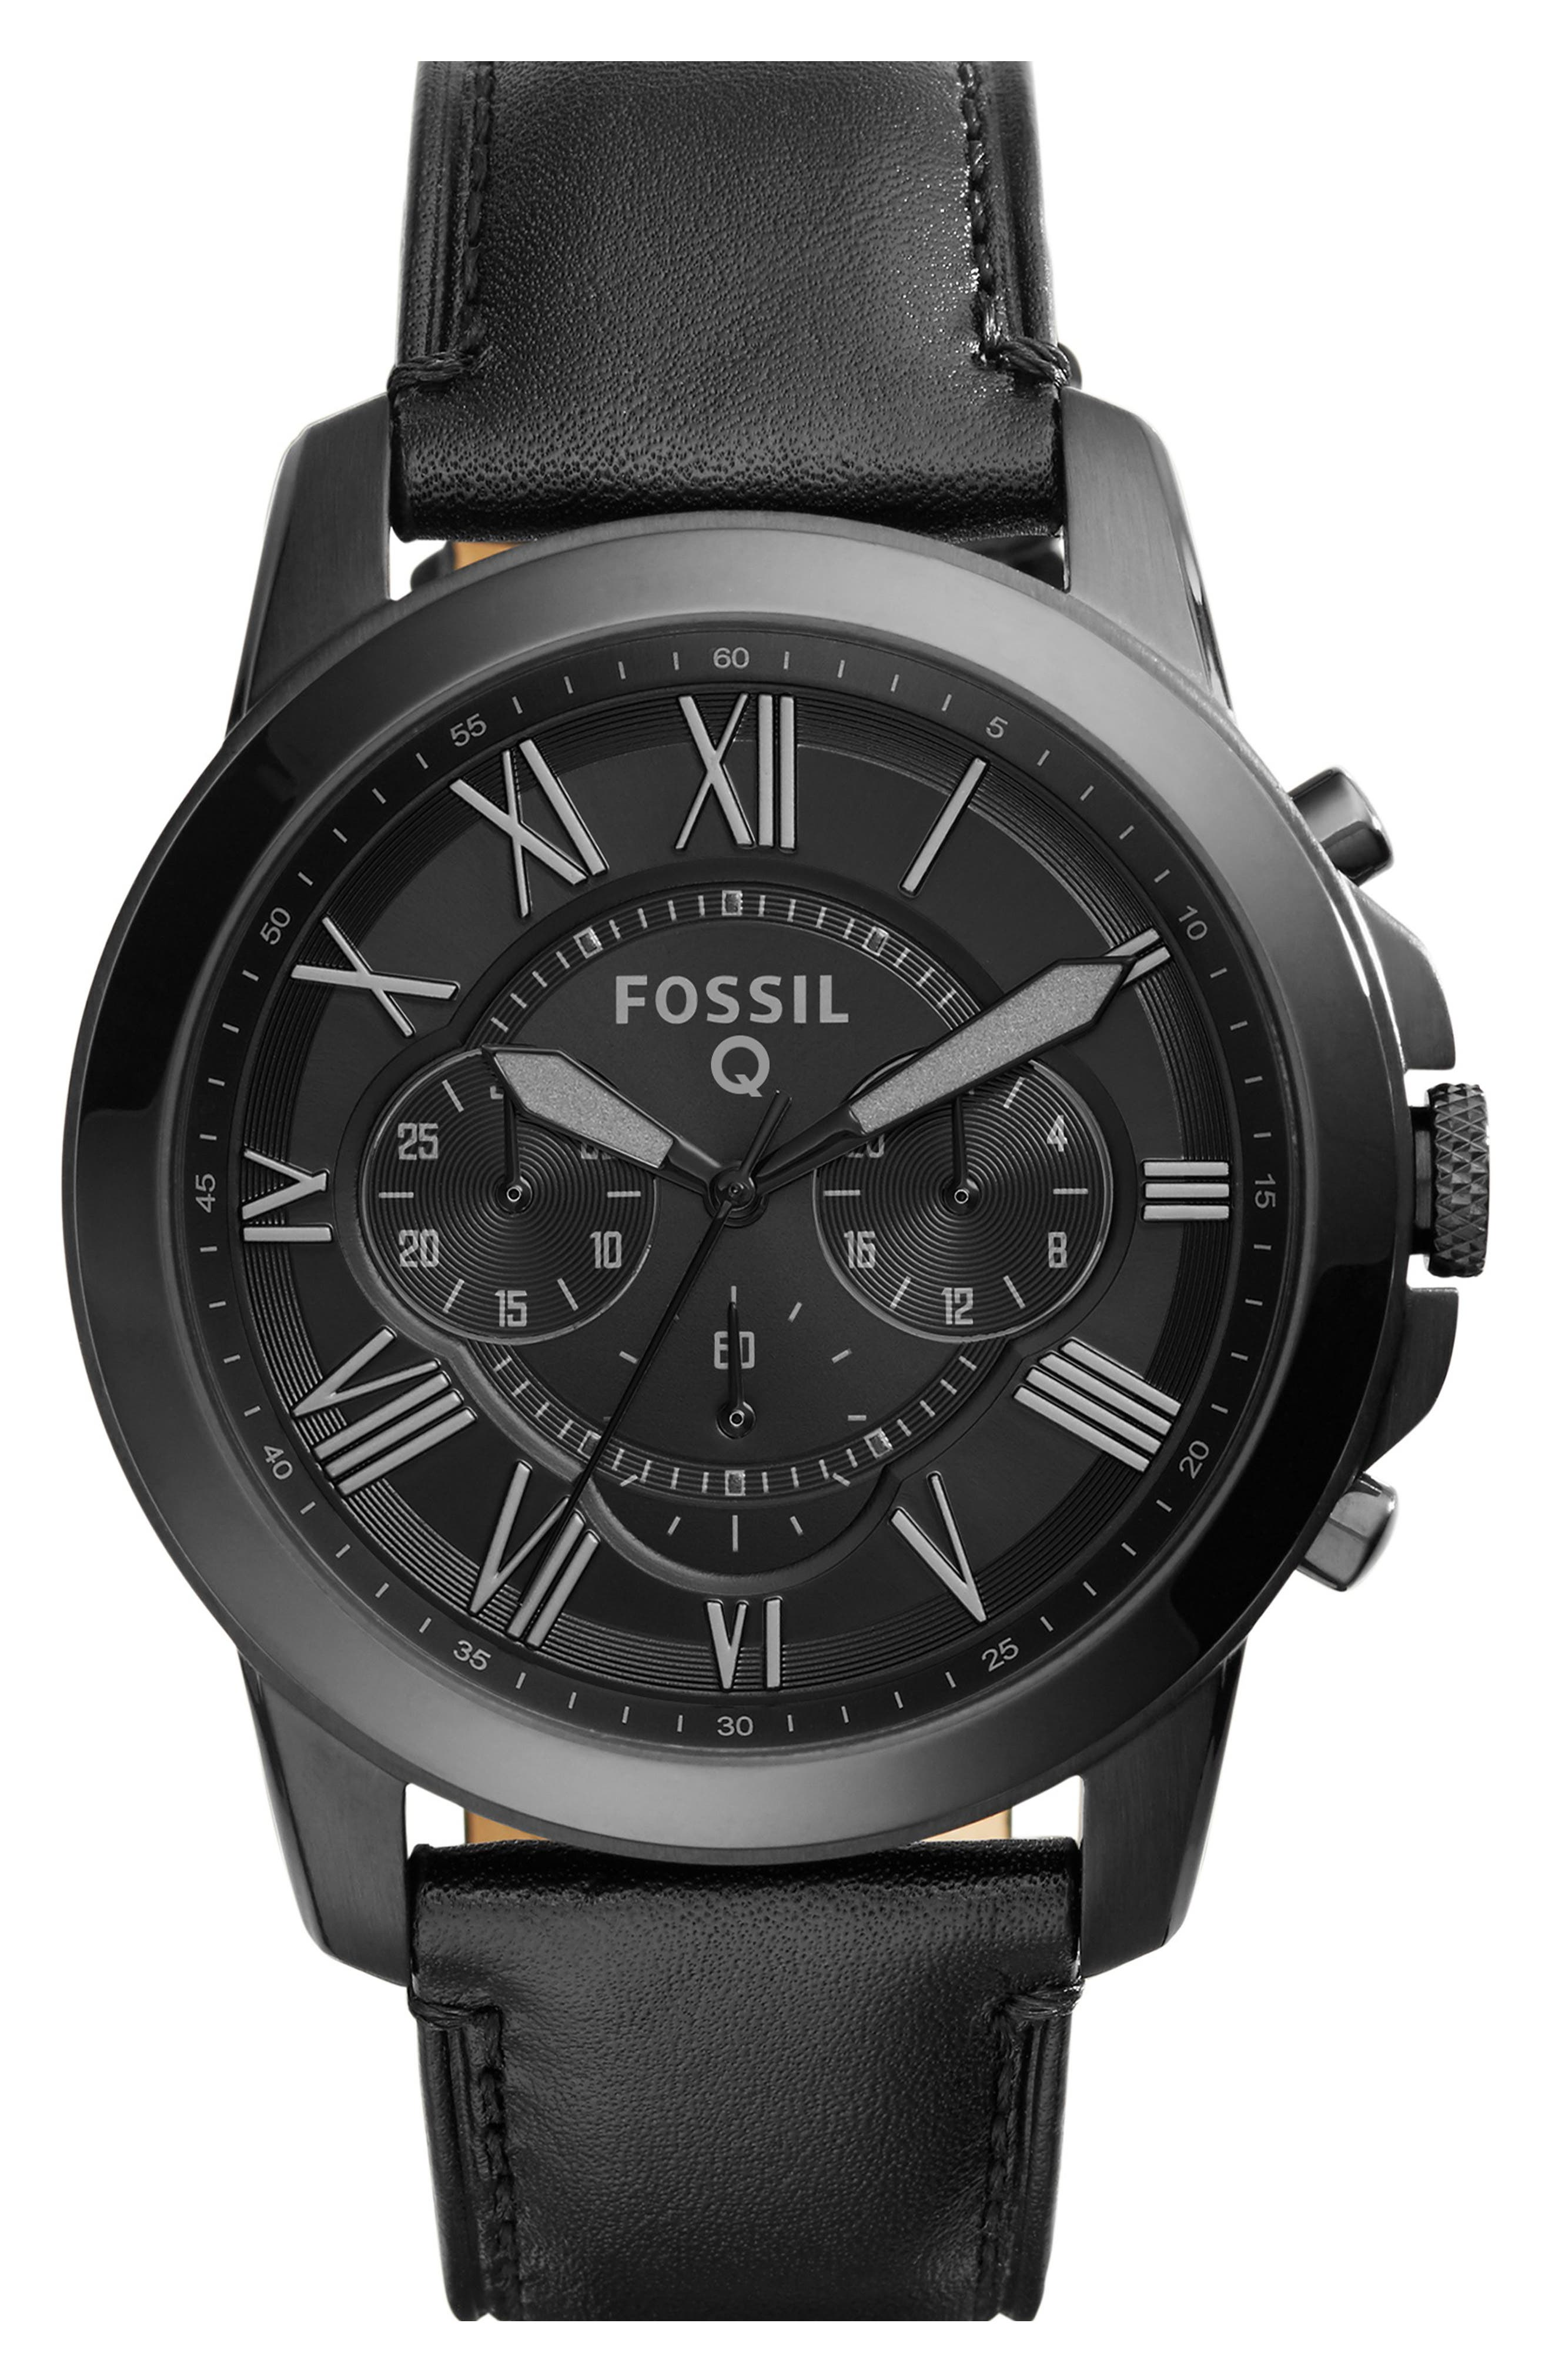 Fossil 'Fossil Q - Grant' Round Chronograph Leather Strap Smart Watch, 44mm,                             Alternate thumbnail 2, color,                             001